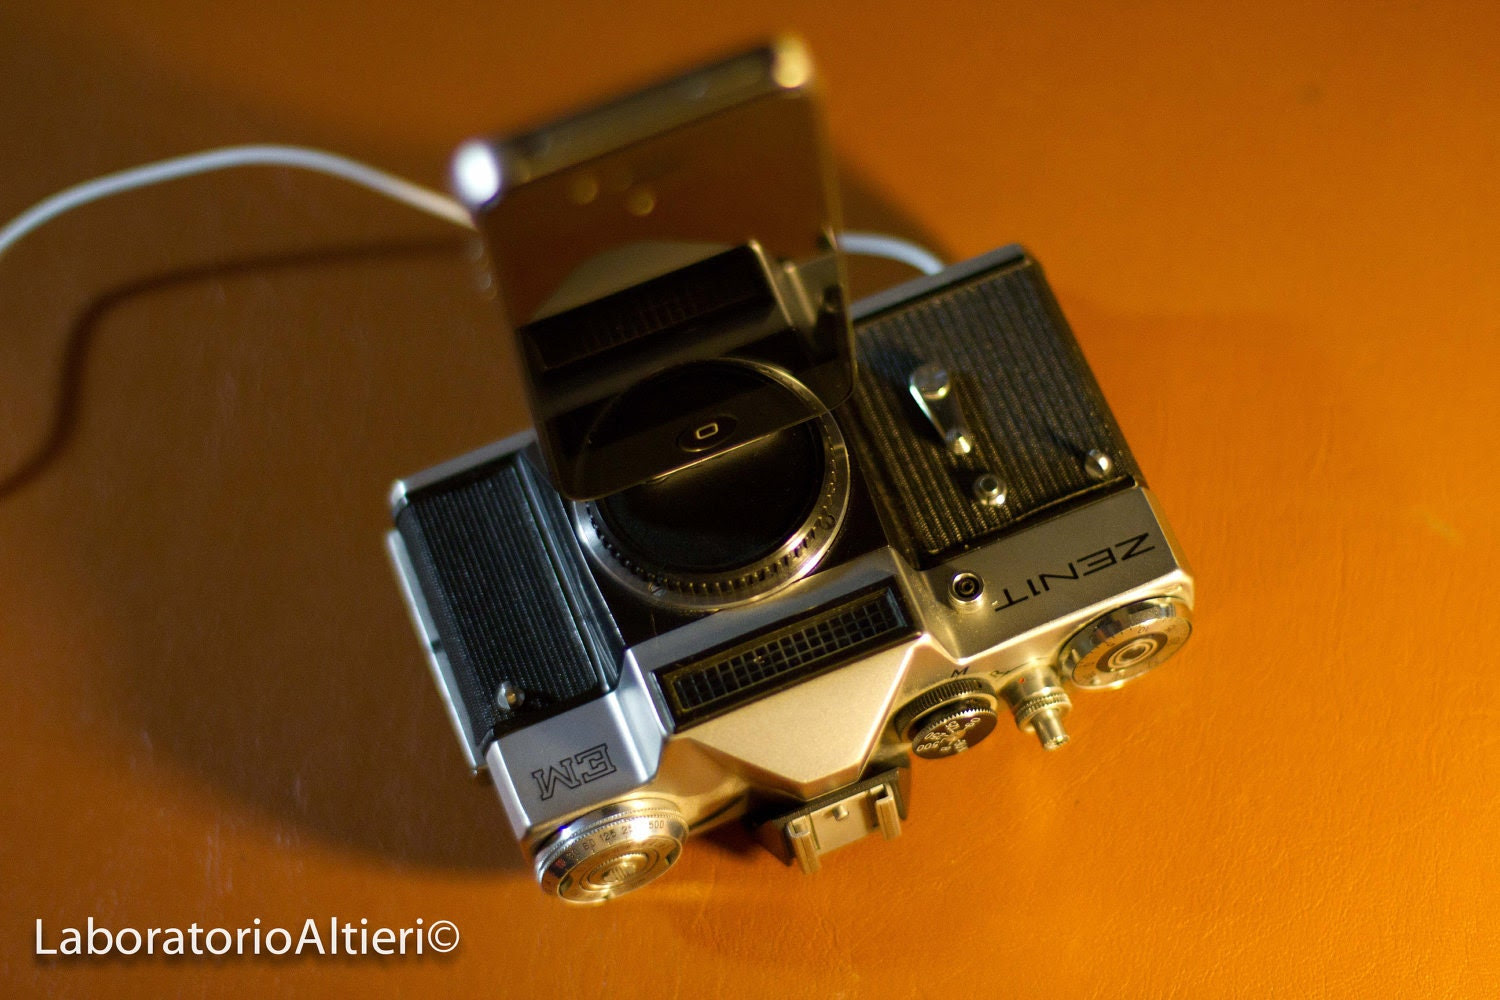 iPhone charger / dock from vintage camera - ZENIT